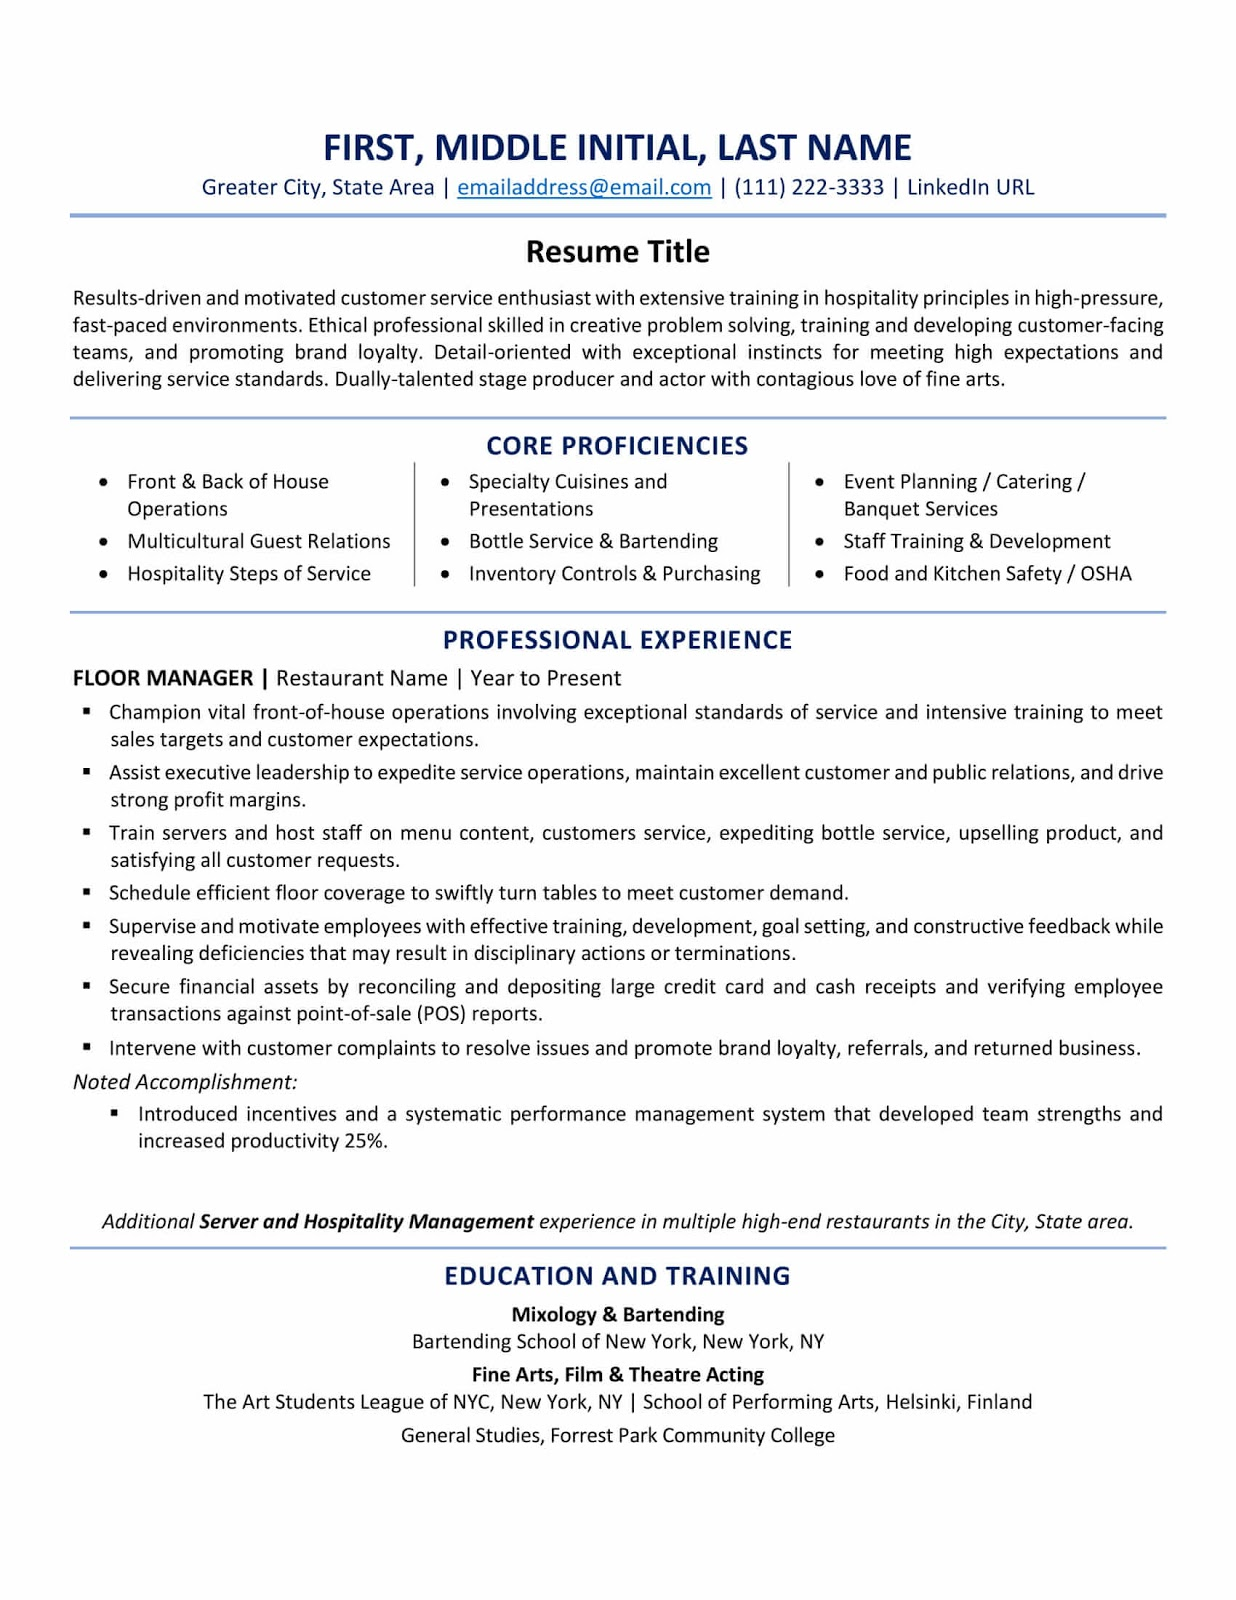 resume format best tips and examples updated hvac two sided pharmaceutical regulatory Resume Resume Format And Examples